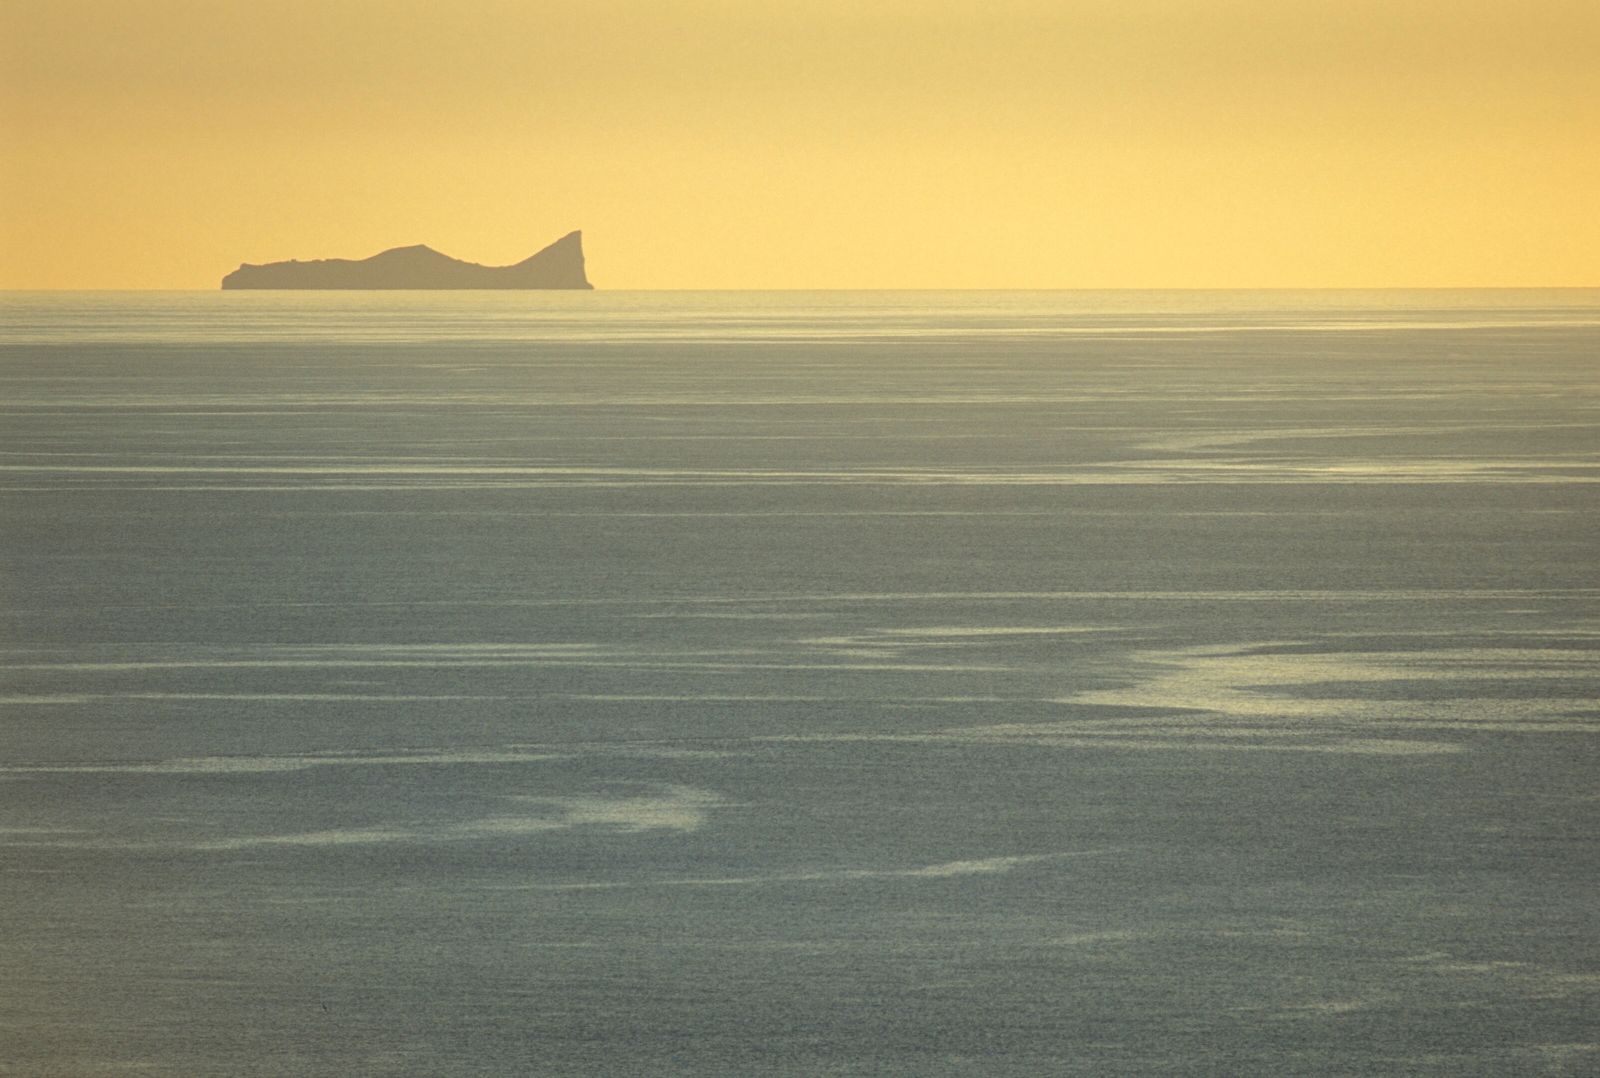 Part of the Vestmannaeyjar archipelago, Surtsey today in an important nature reserve, and in 2004 was ...